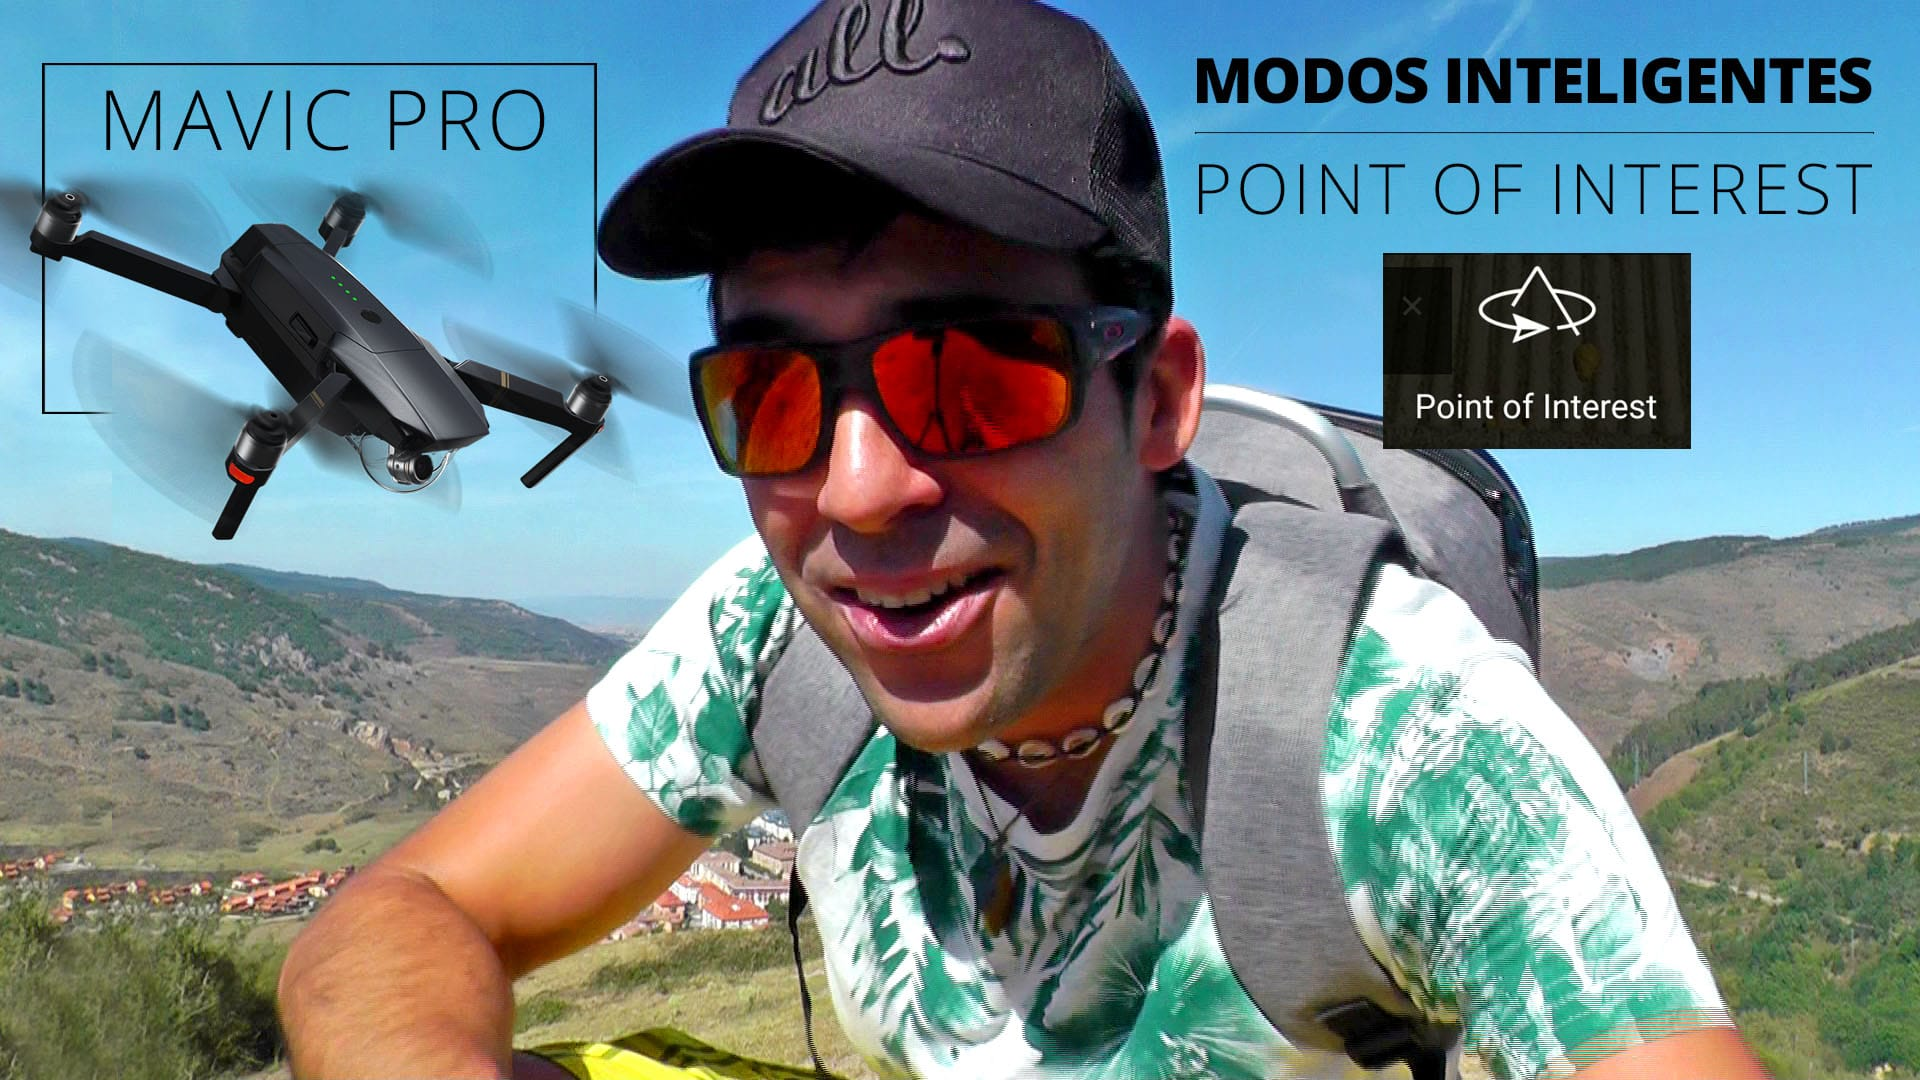 mavic-pro-modos-inteligentes-point-of-interest_punto-de-interes